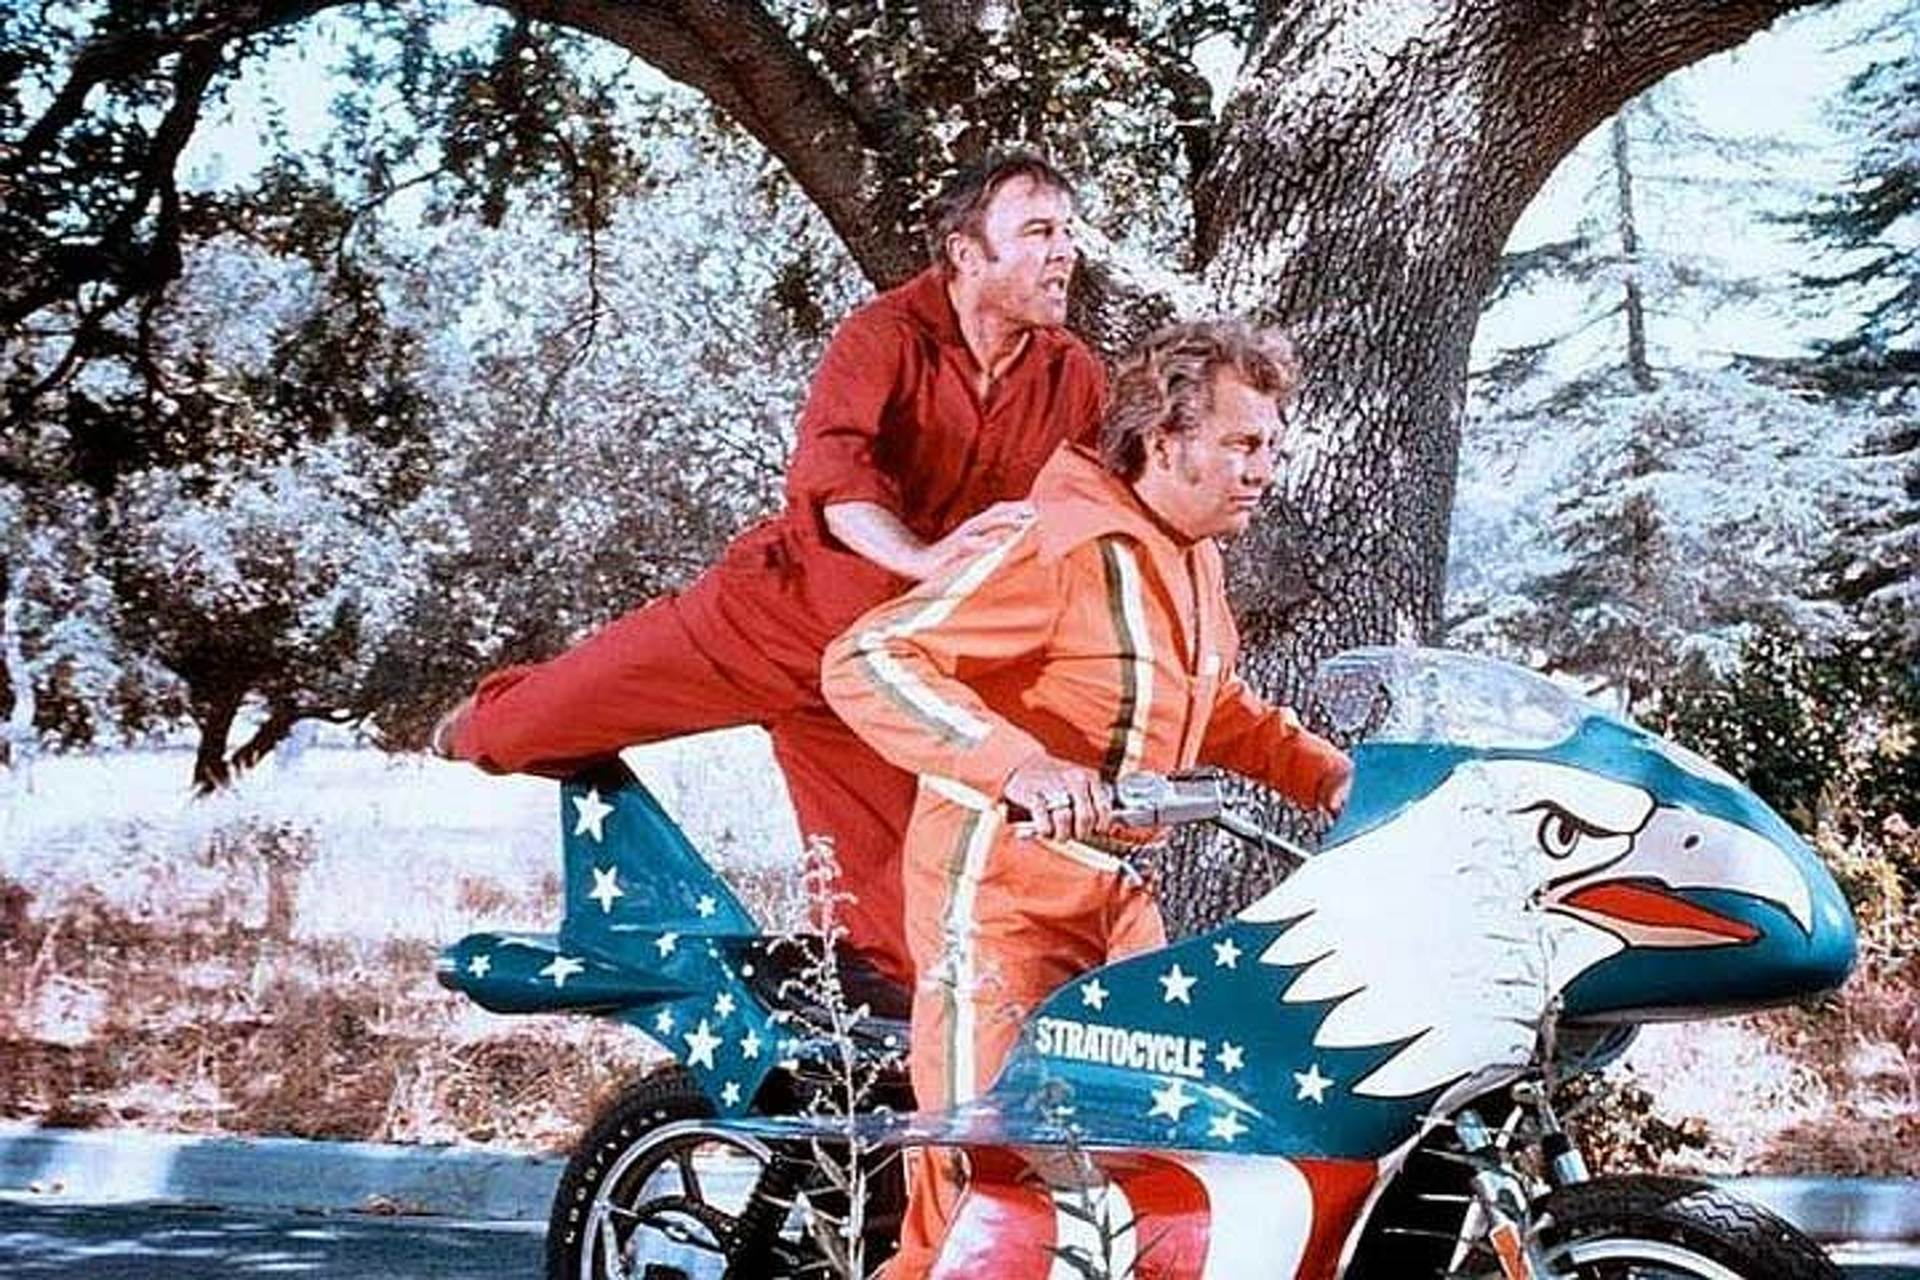 1977 Viva Knievel Doing Daredevil Stunt Evel Harley: The Rare Evel Knievel Stratocycle Goes To Auction, And It